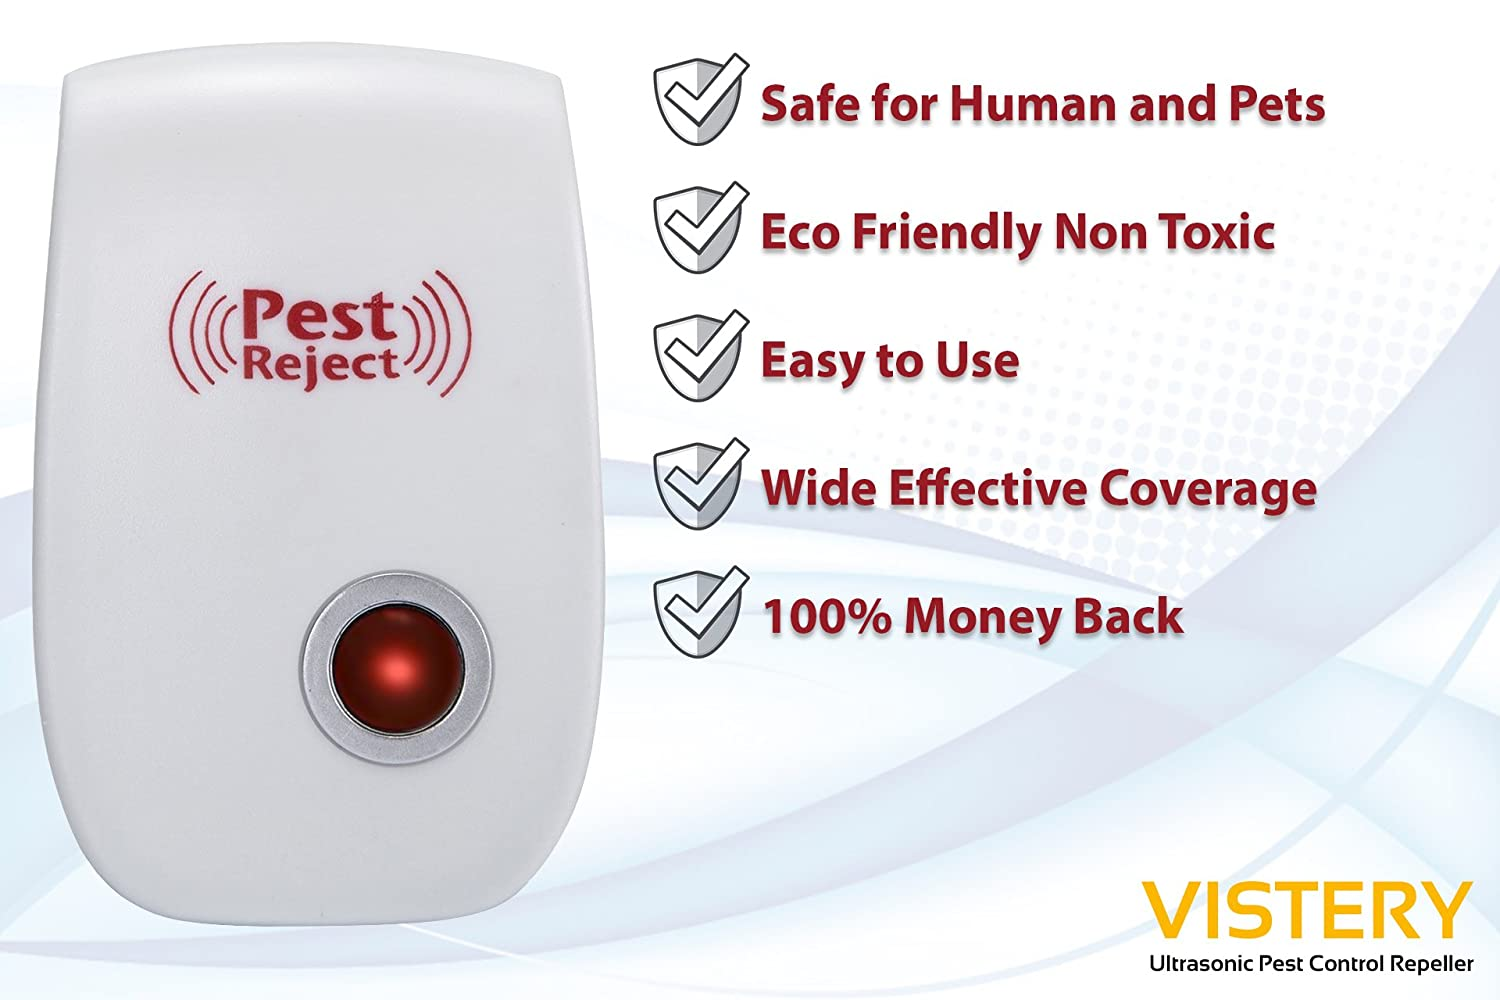 [2018 Upgraded] vistery Ultrasonic Pest Control Repeller - Repelente de plagas electrónico - Repele el ratón, chinches, insectos, cucarachas, mosquitos no ...